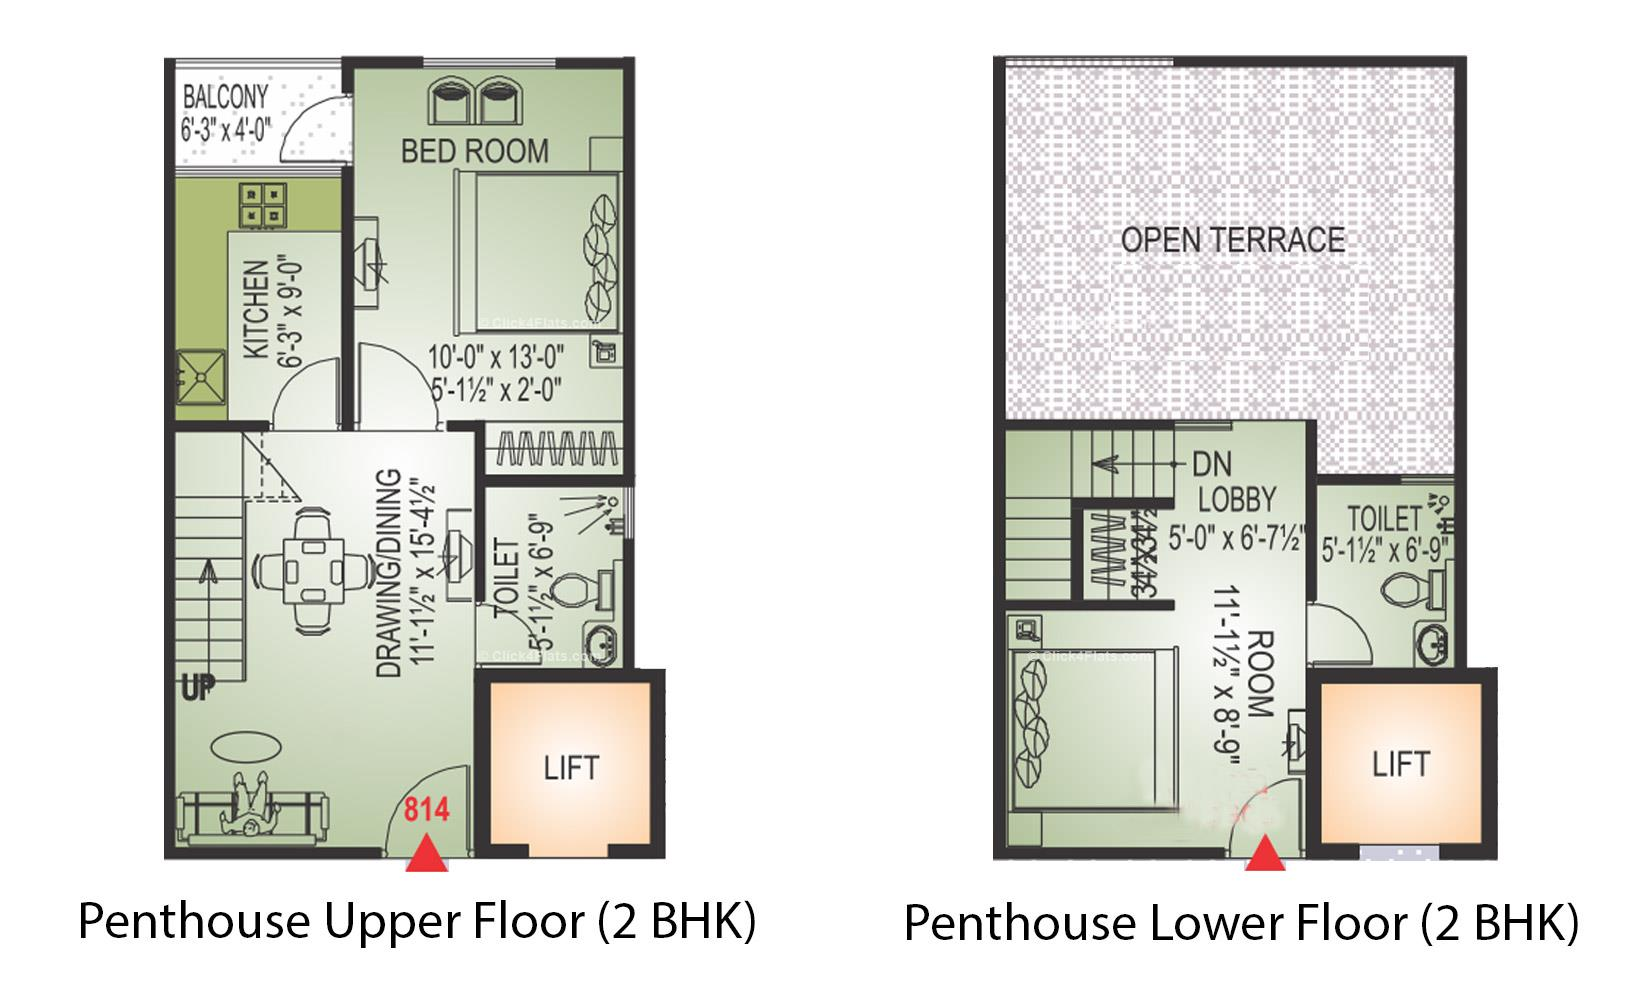 KarniKripa Homes 2 BHK